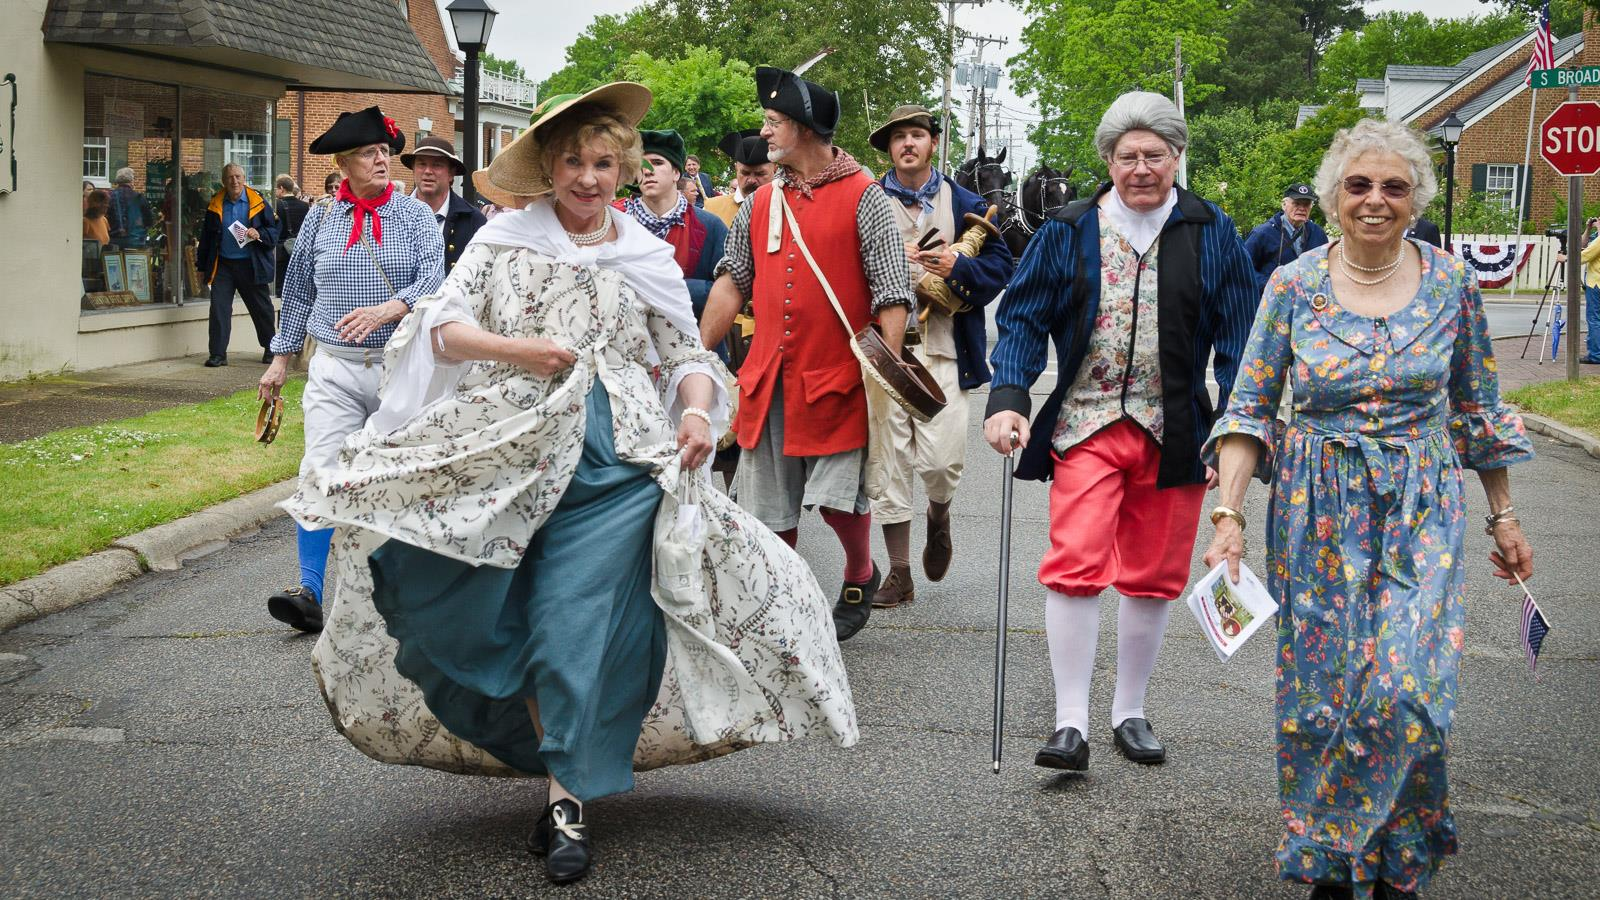 Colonial celebration, Edenton, North Carolina